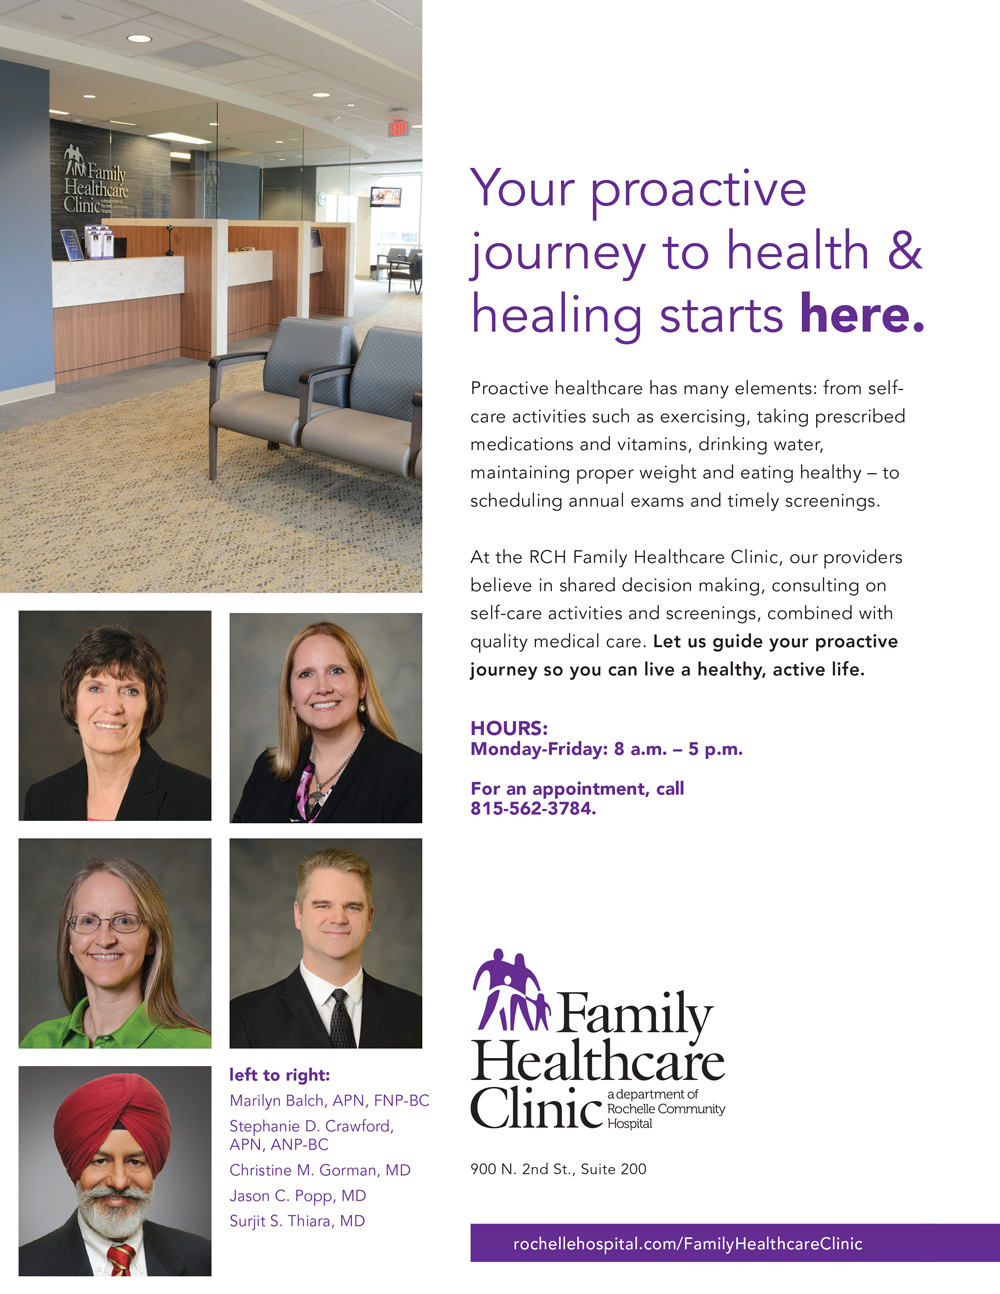 rochelle hospital healthcare marketing done by mcdaniels marketing